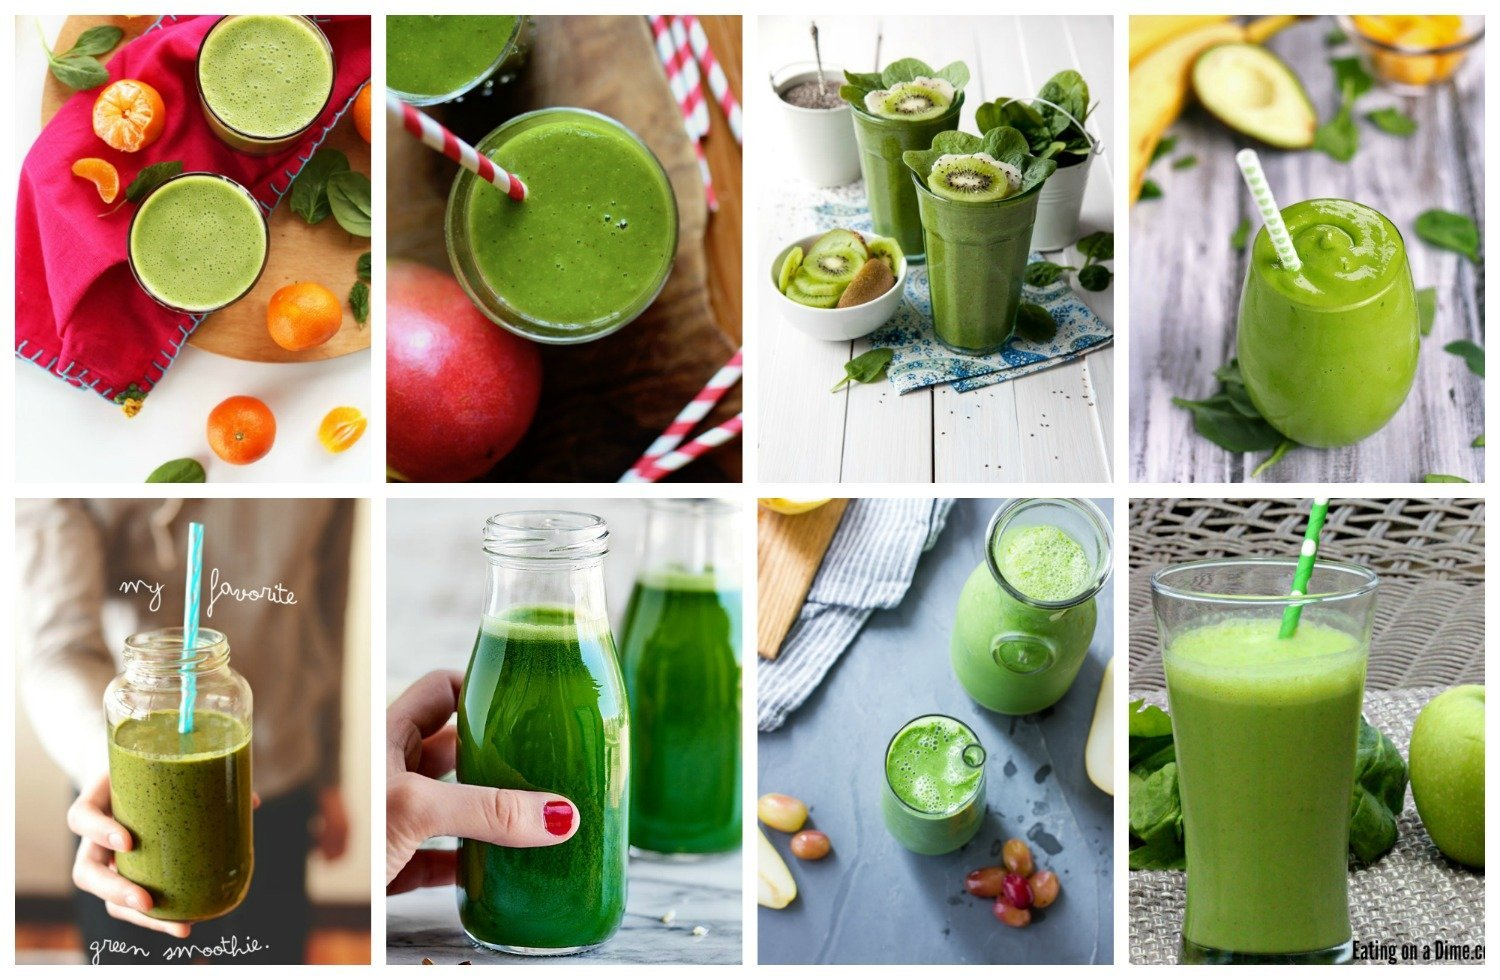 8 Delicious Green Drinks to Jumpstart Your Day with Energy and Nutrition